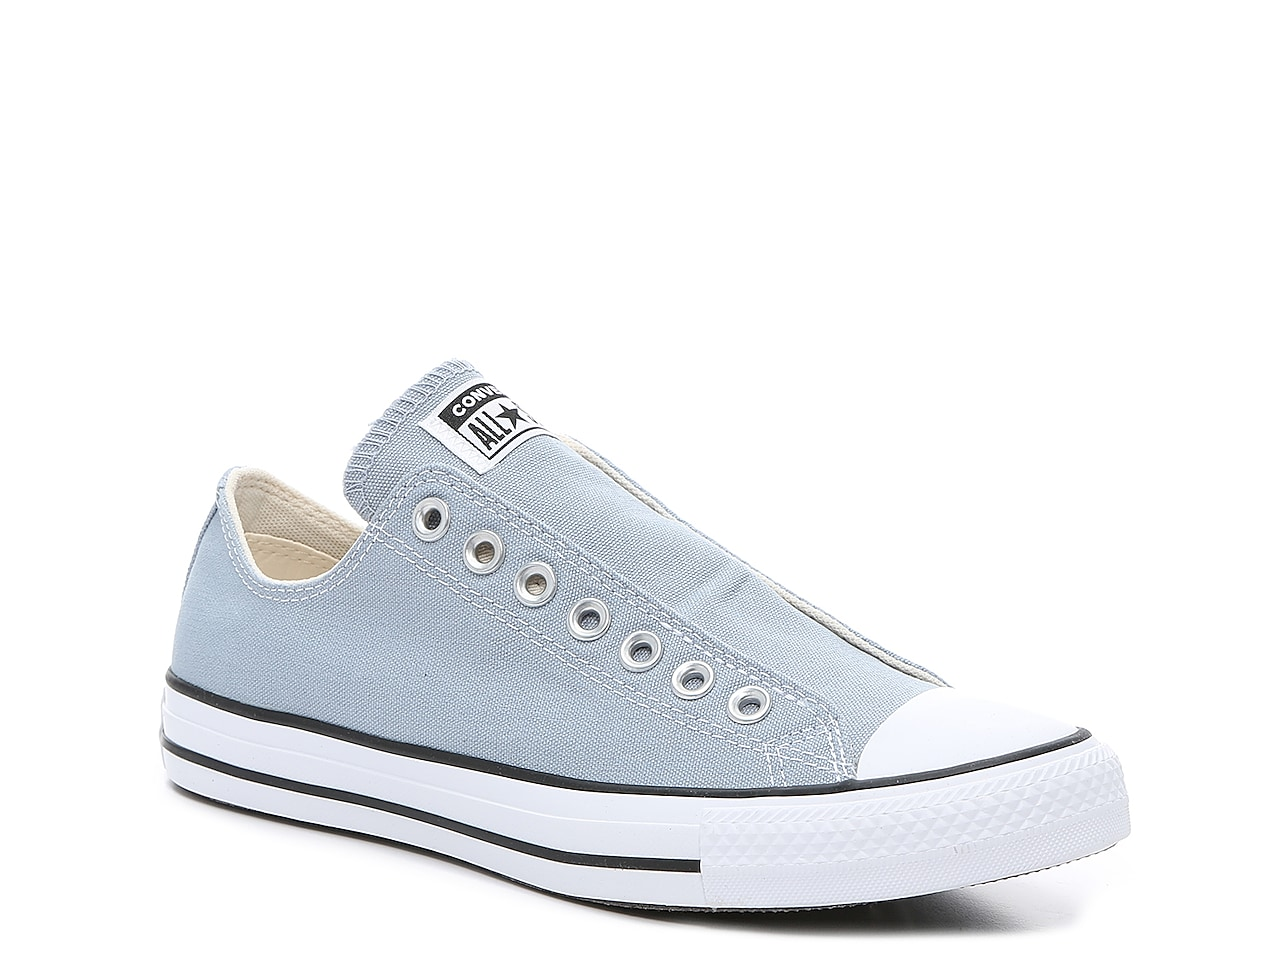 Chuck Taylor All Star Slip-On Sneaker - Women's